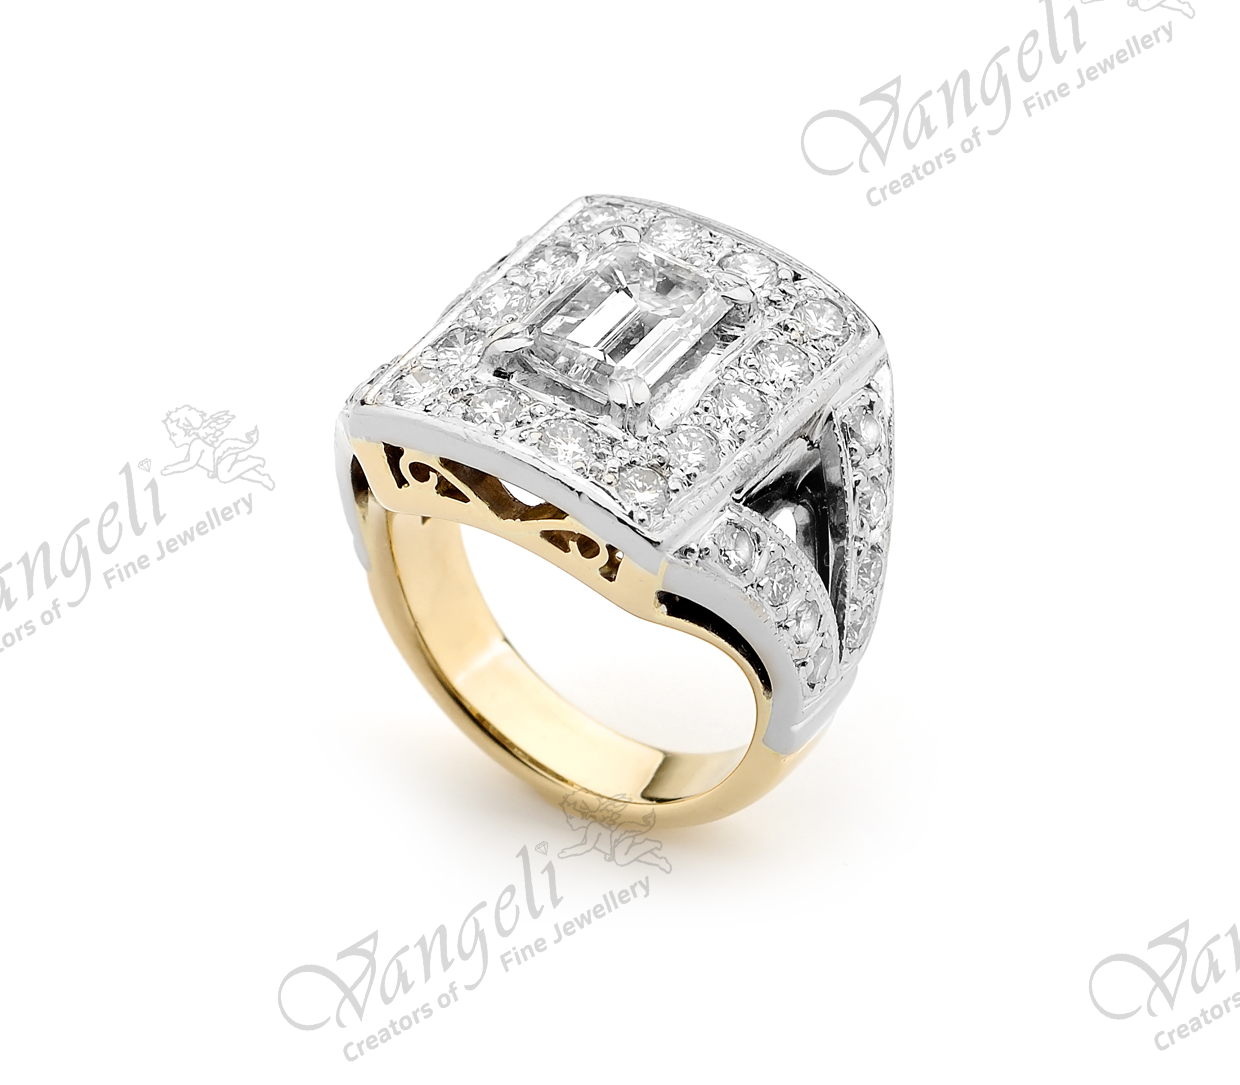 18ct custom designed hand-made yellow and white gold diamond ring with emerald cut centre diamond.